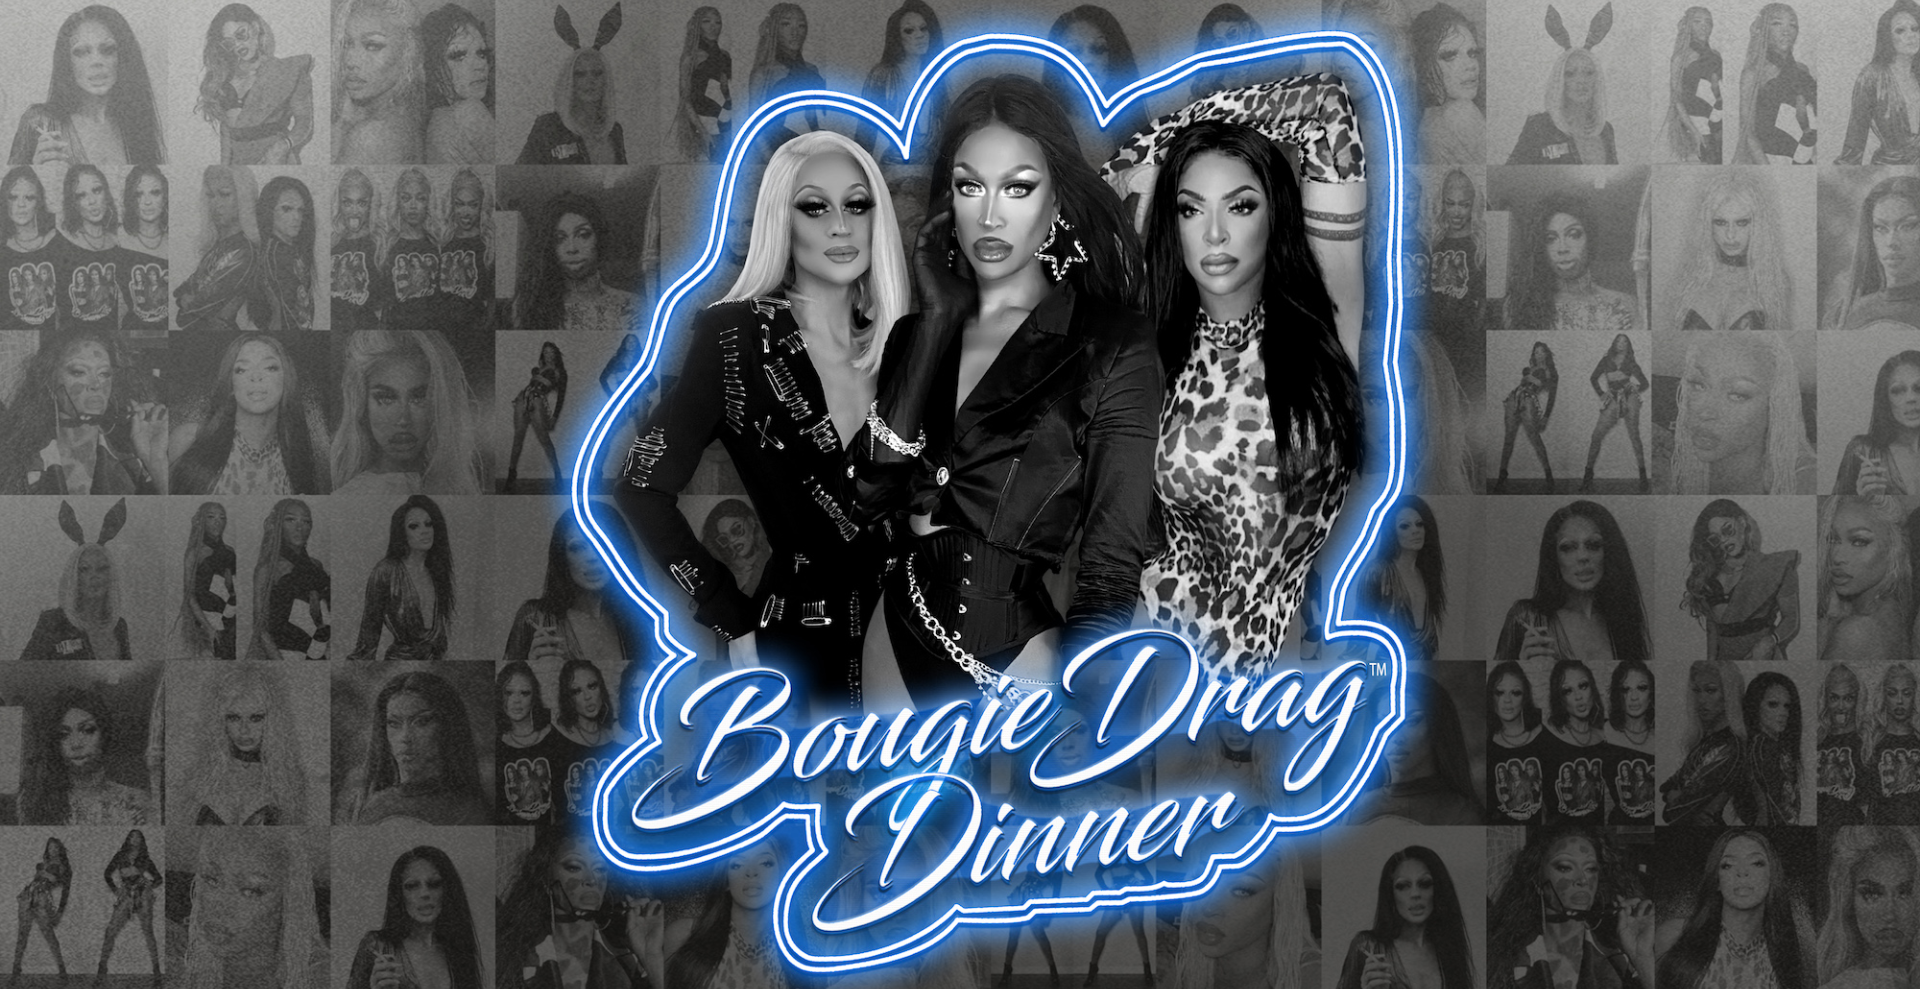 Bougie Drag Bottomless Dinner